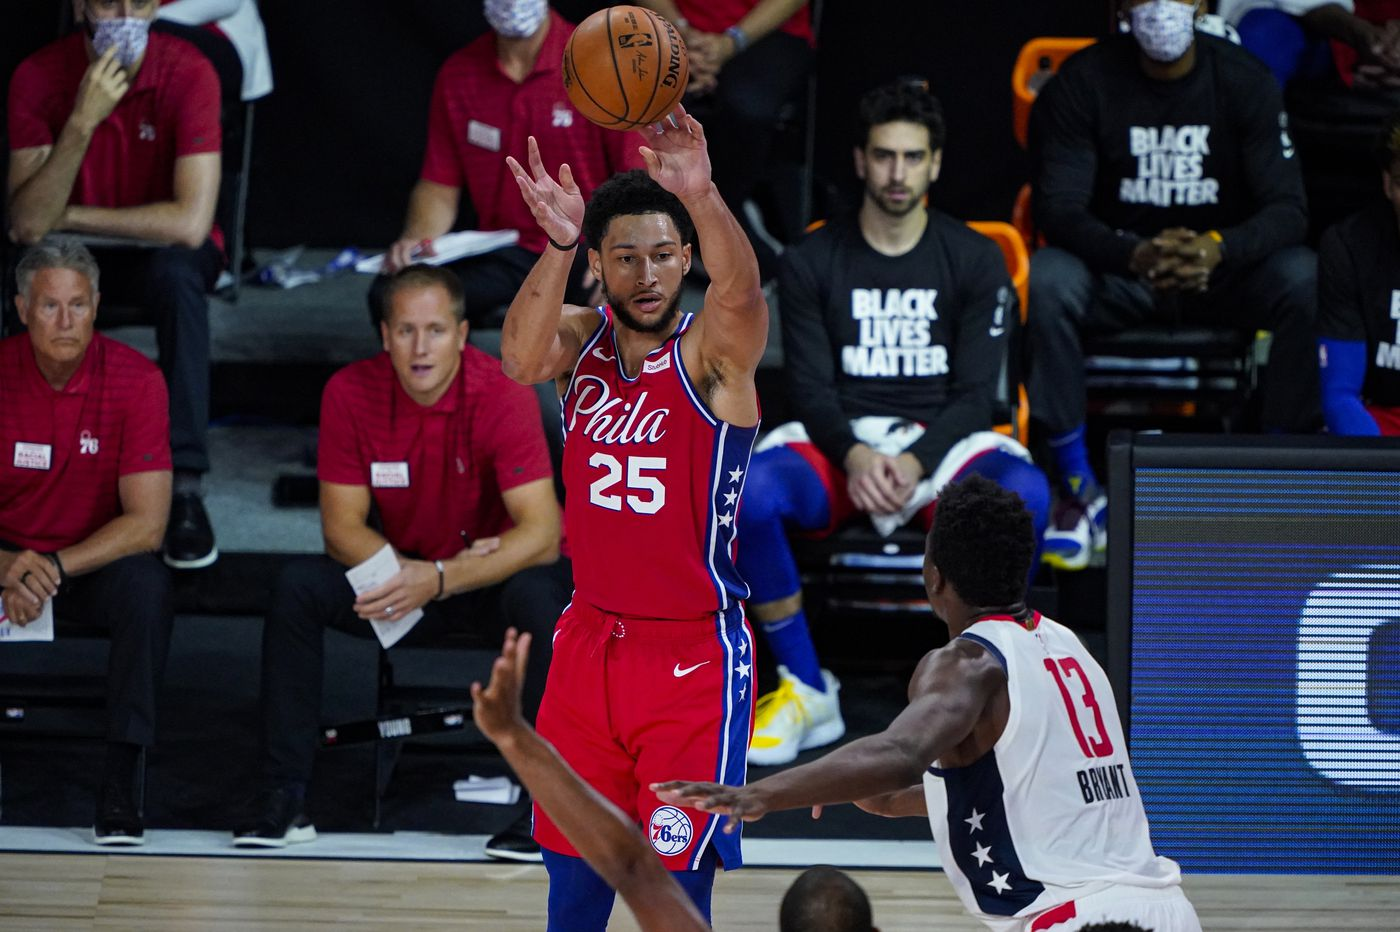 Sixers top Washington Wizards, 107-98, but lose Ben Simmons to left knee injury